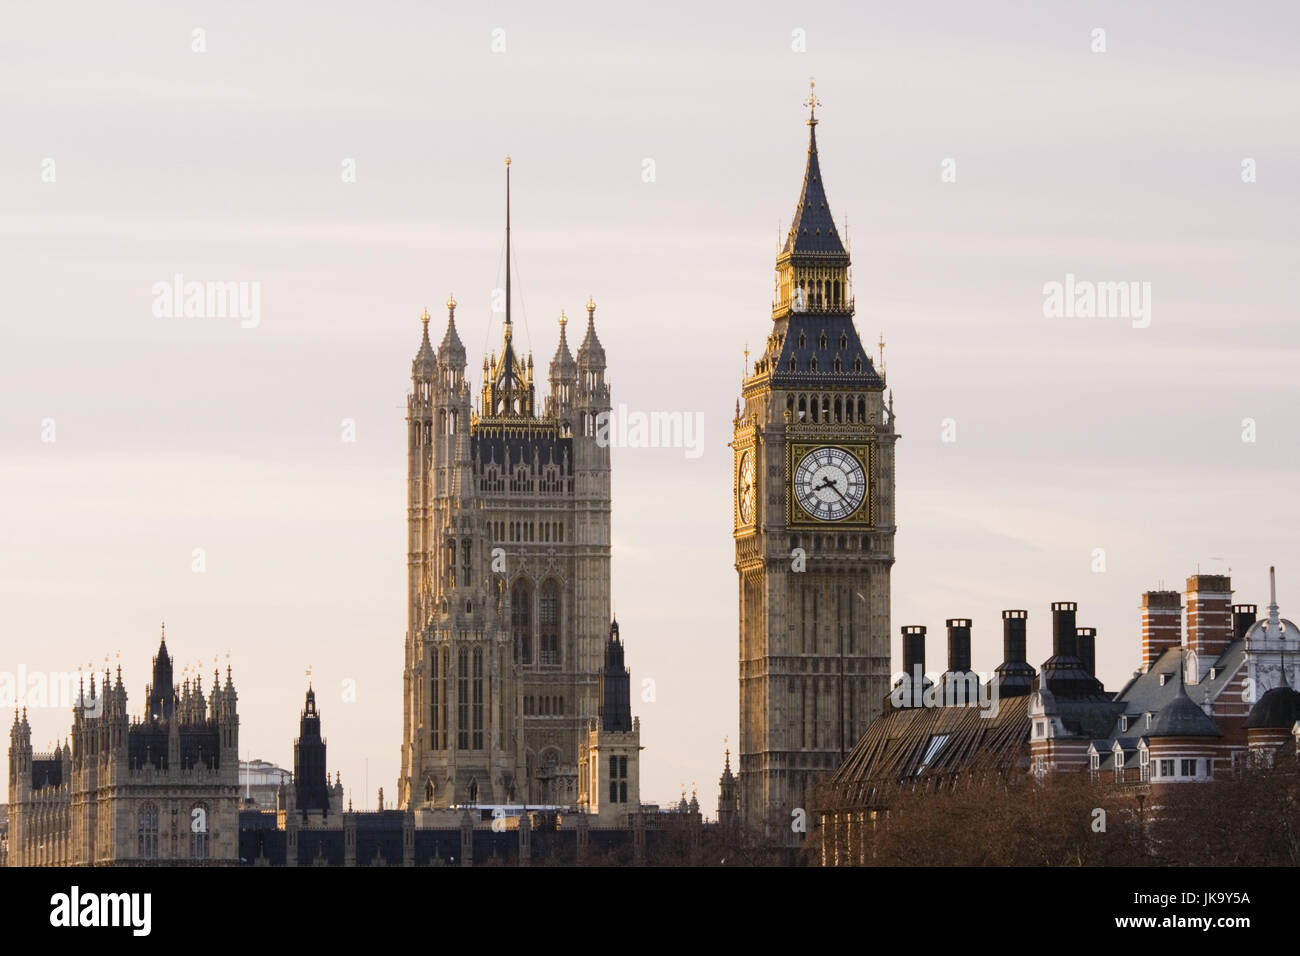 Großbritannien, England, London, Houses  of Parliament, Big Ben, Victoria Tower,  Morgen,  Europa, Stadt, Hauptstadt, Stock Photo